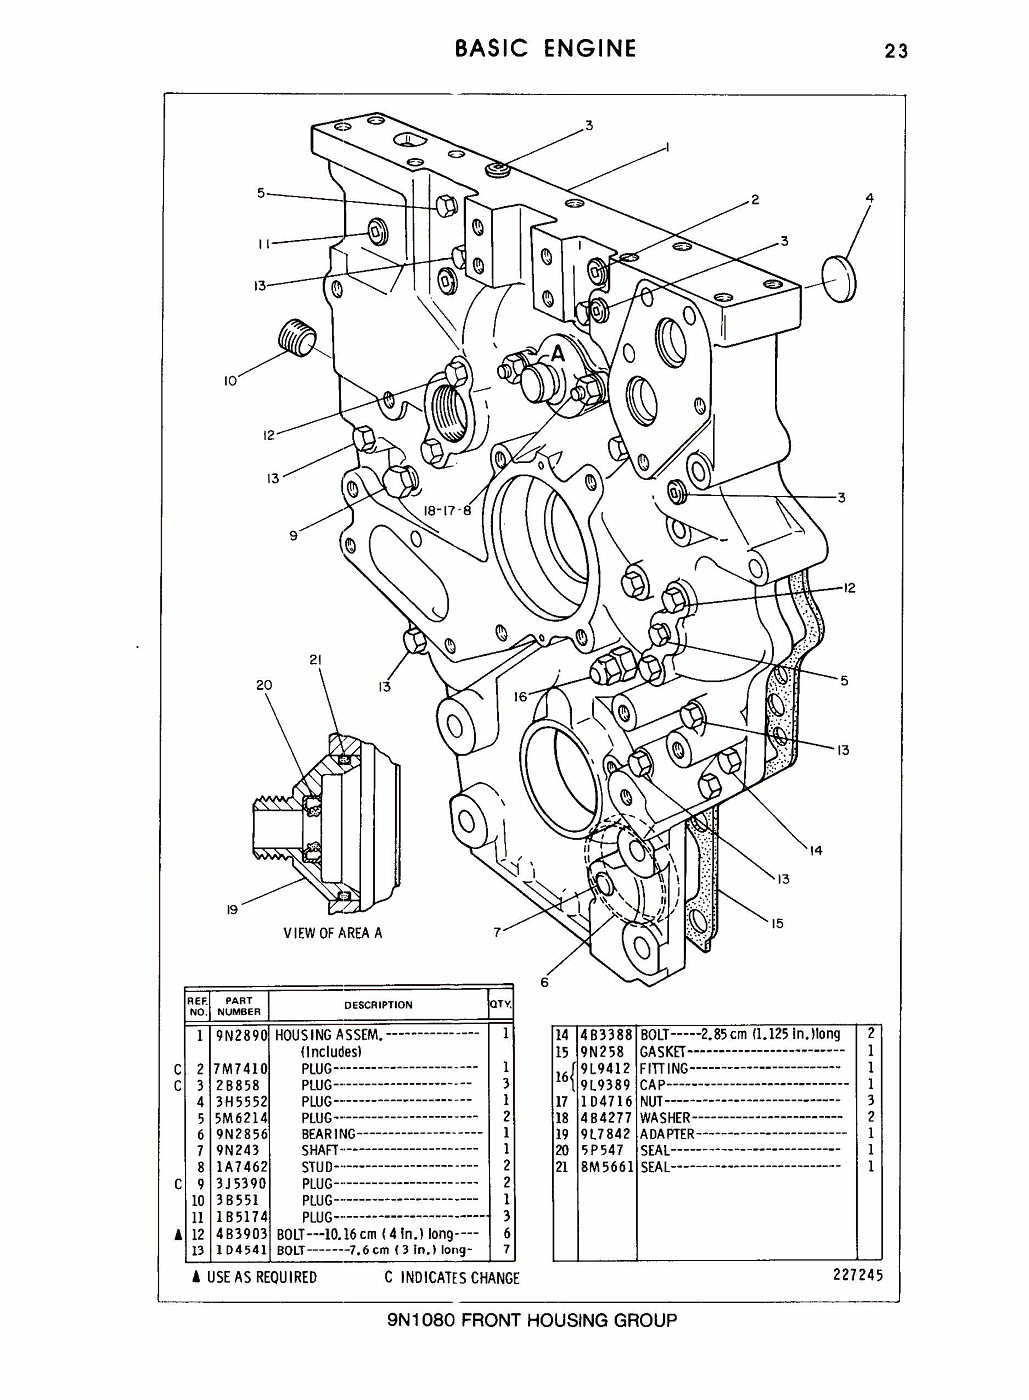 Caterpillar Engine Manuals